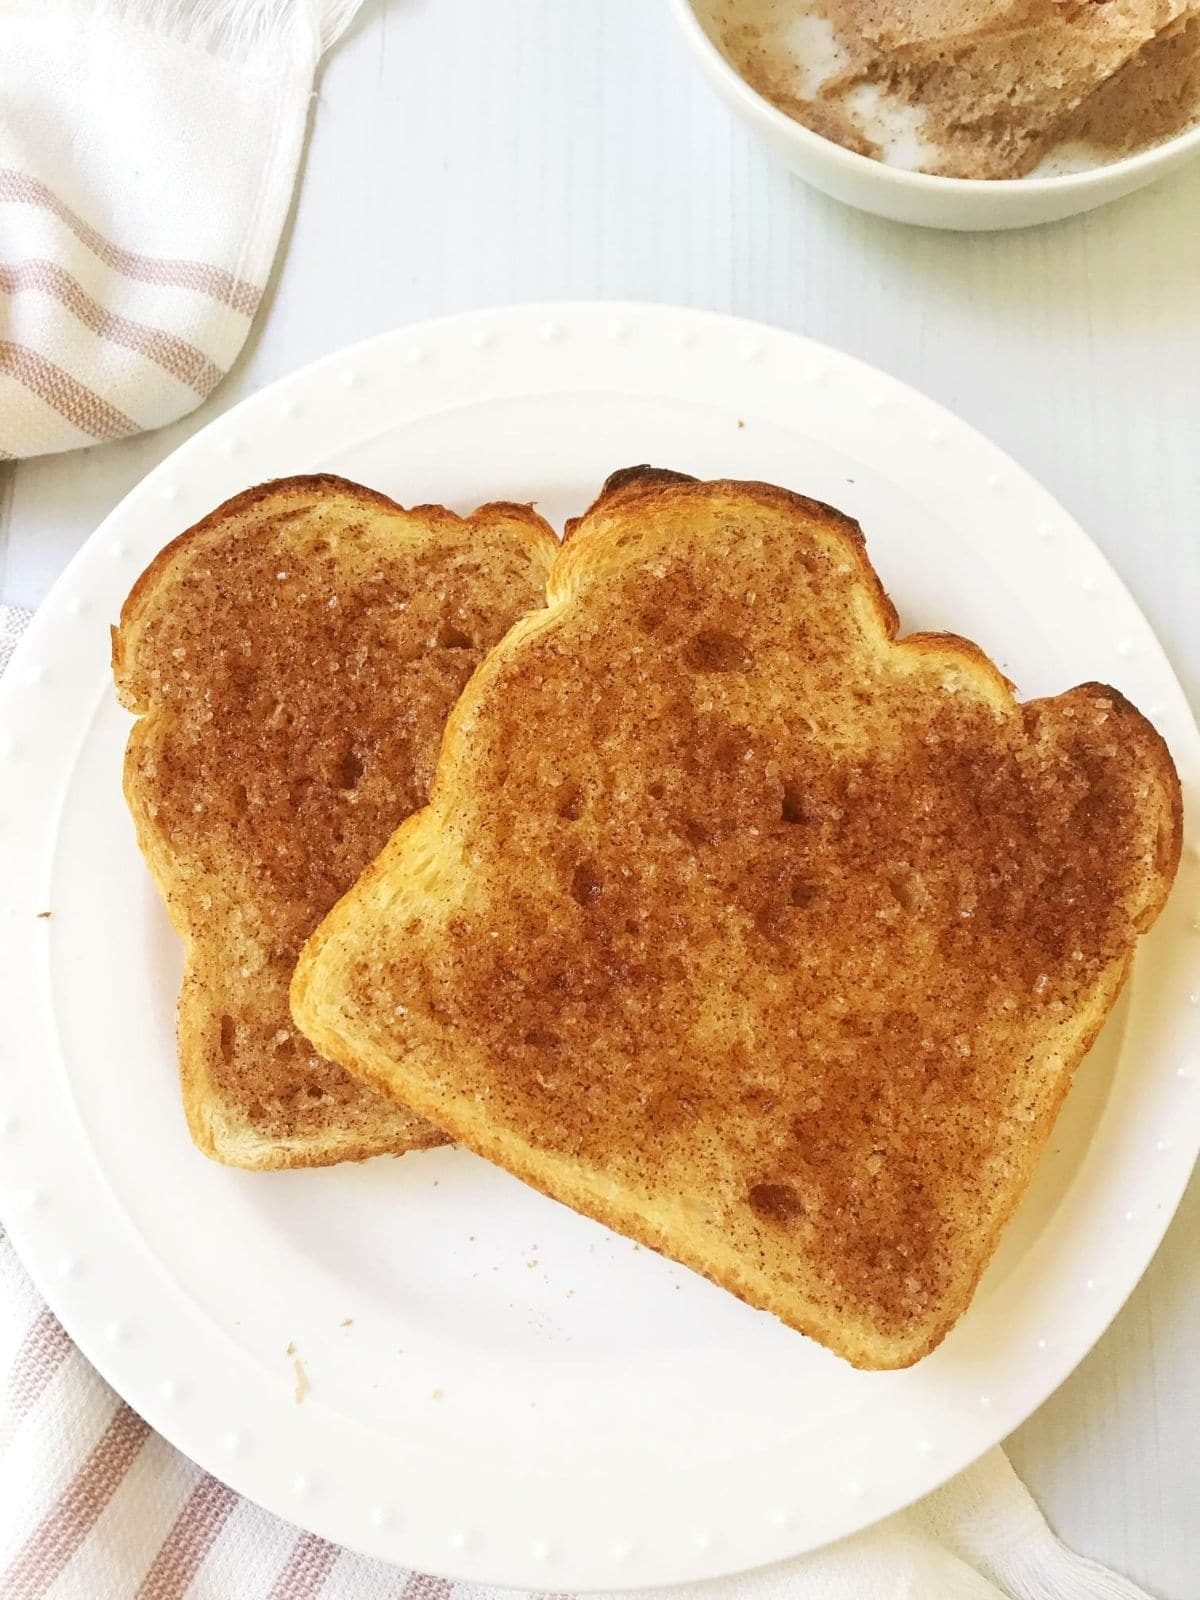 slice of cinnamon sugar toast